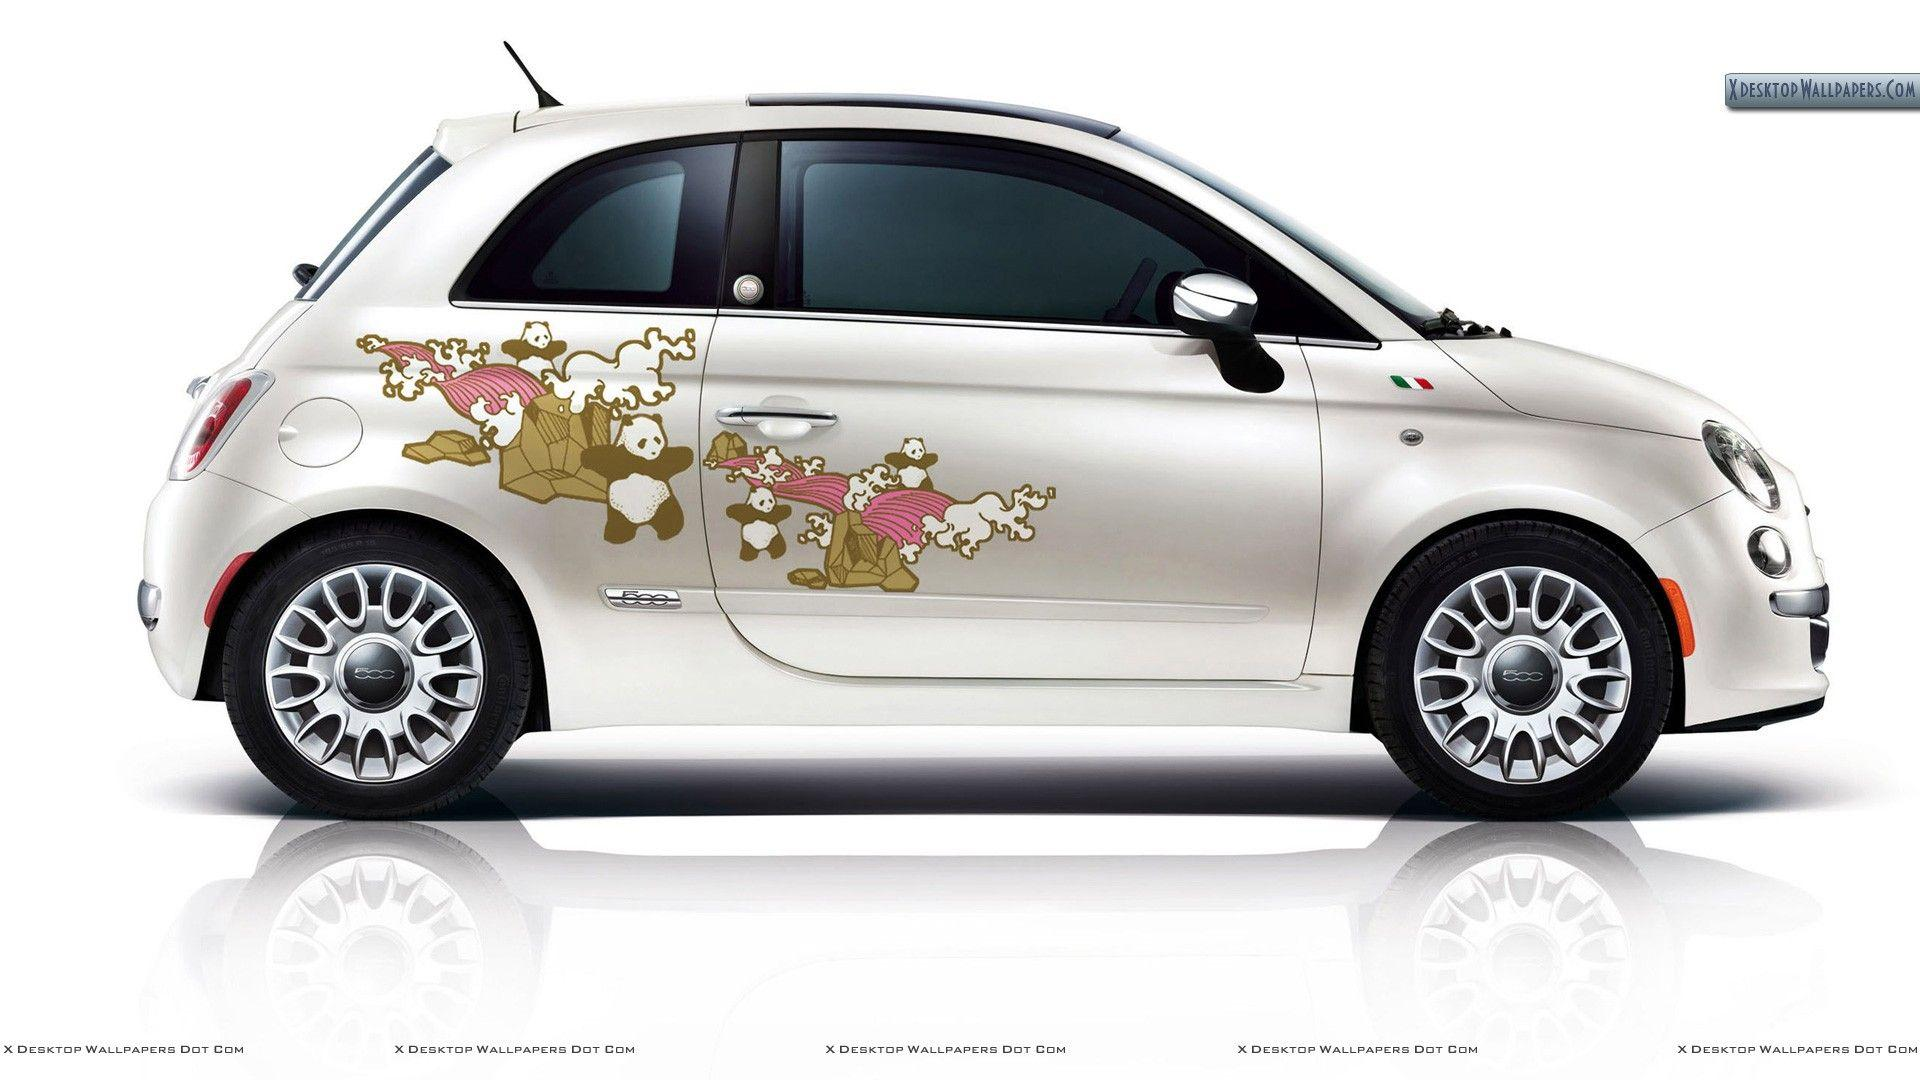 Fiat 500 First Edition – Graphic Design in White Wallpaper